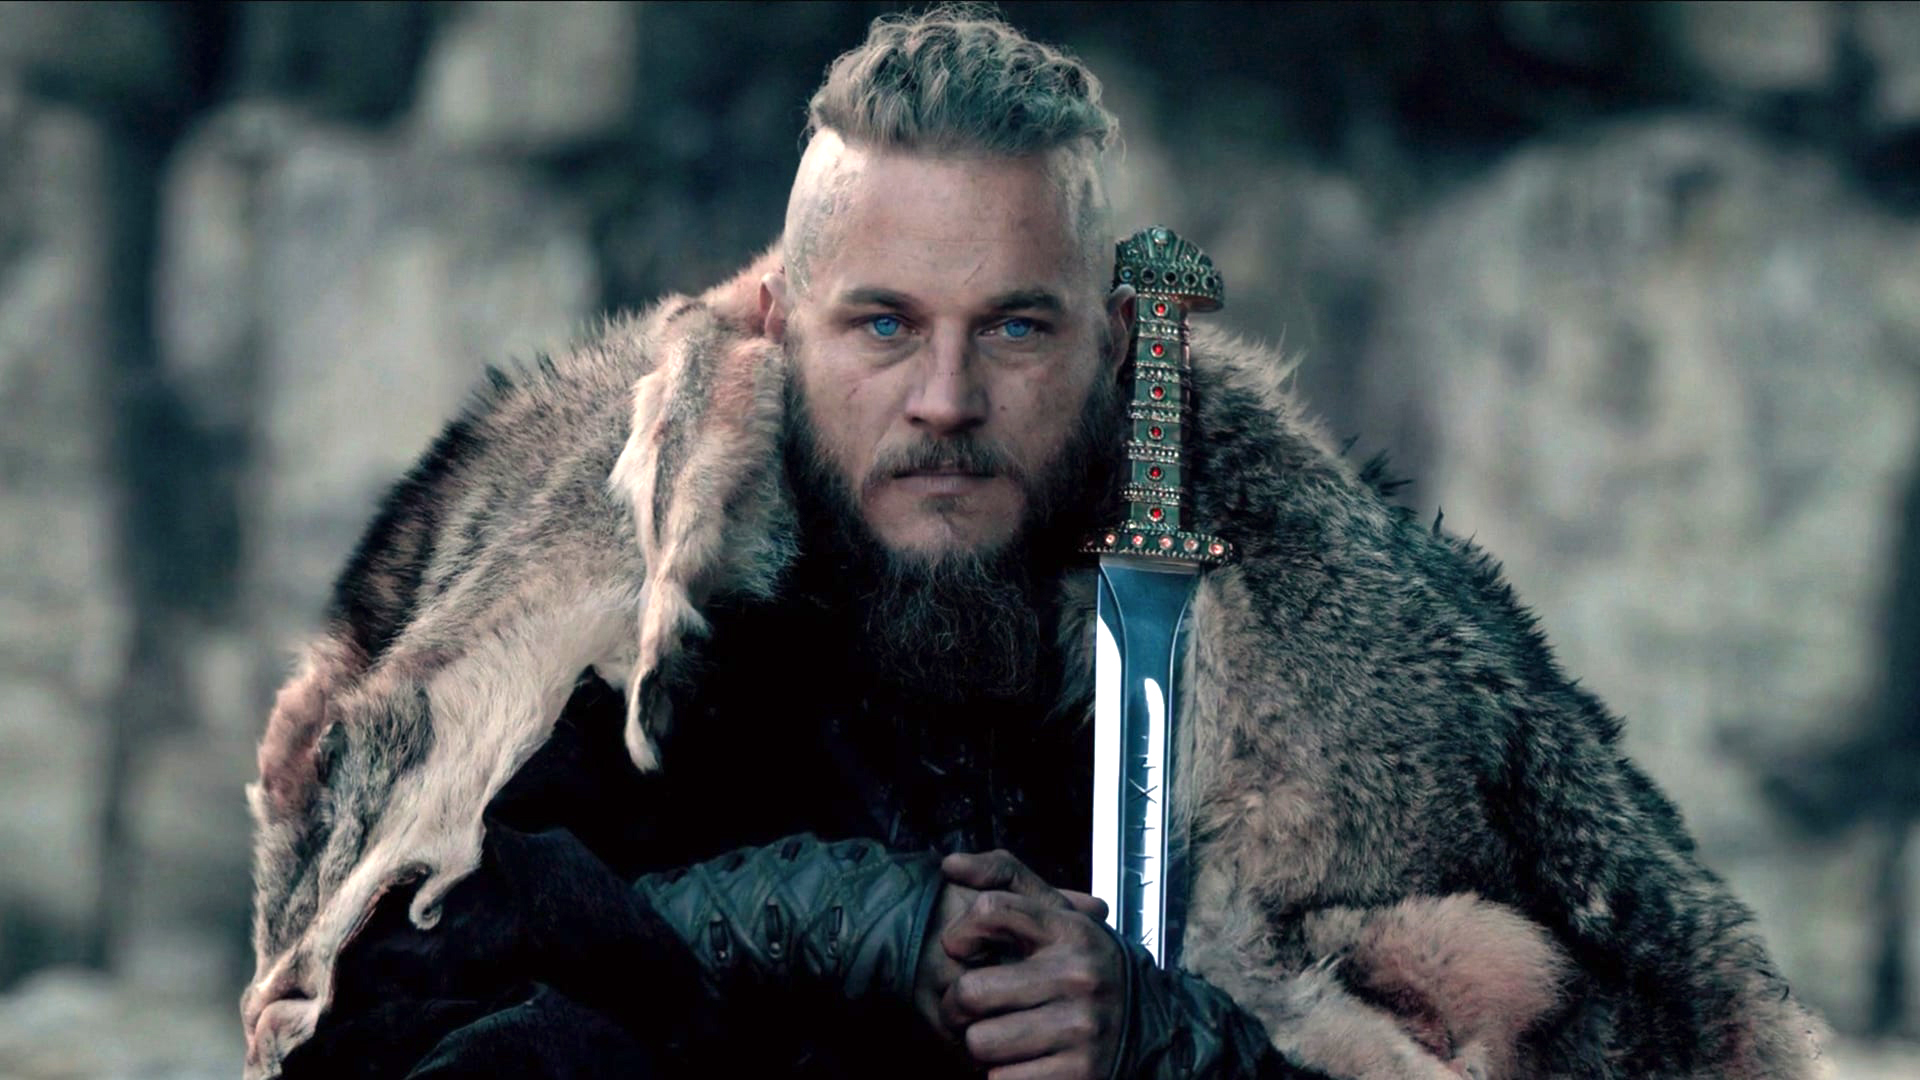 And Fimmel Travis Wife His